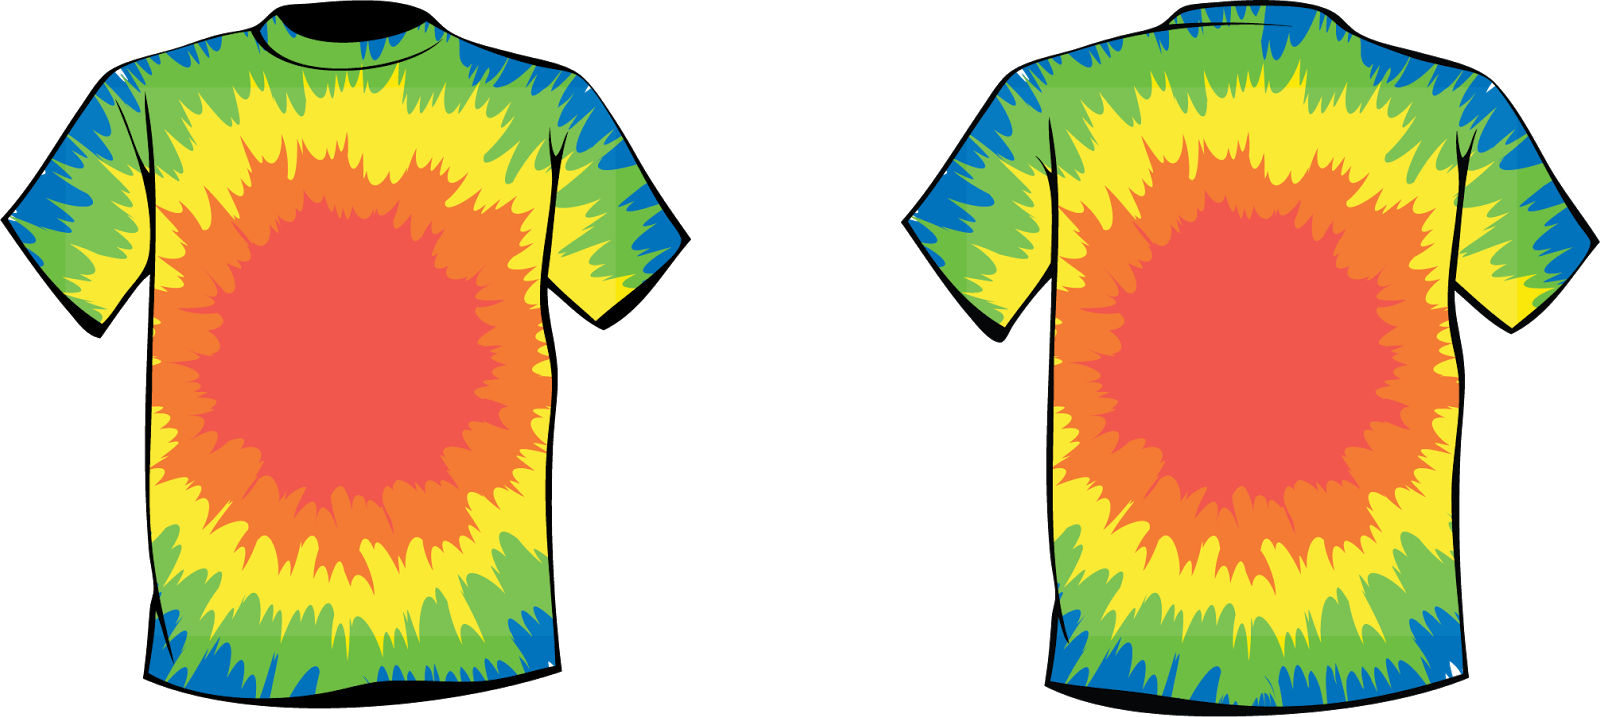 Entry update my adv. Circle clipart tie dye